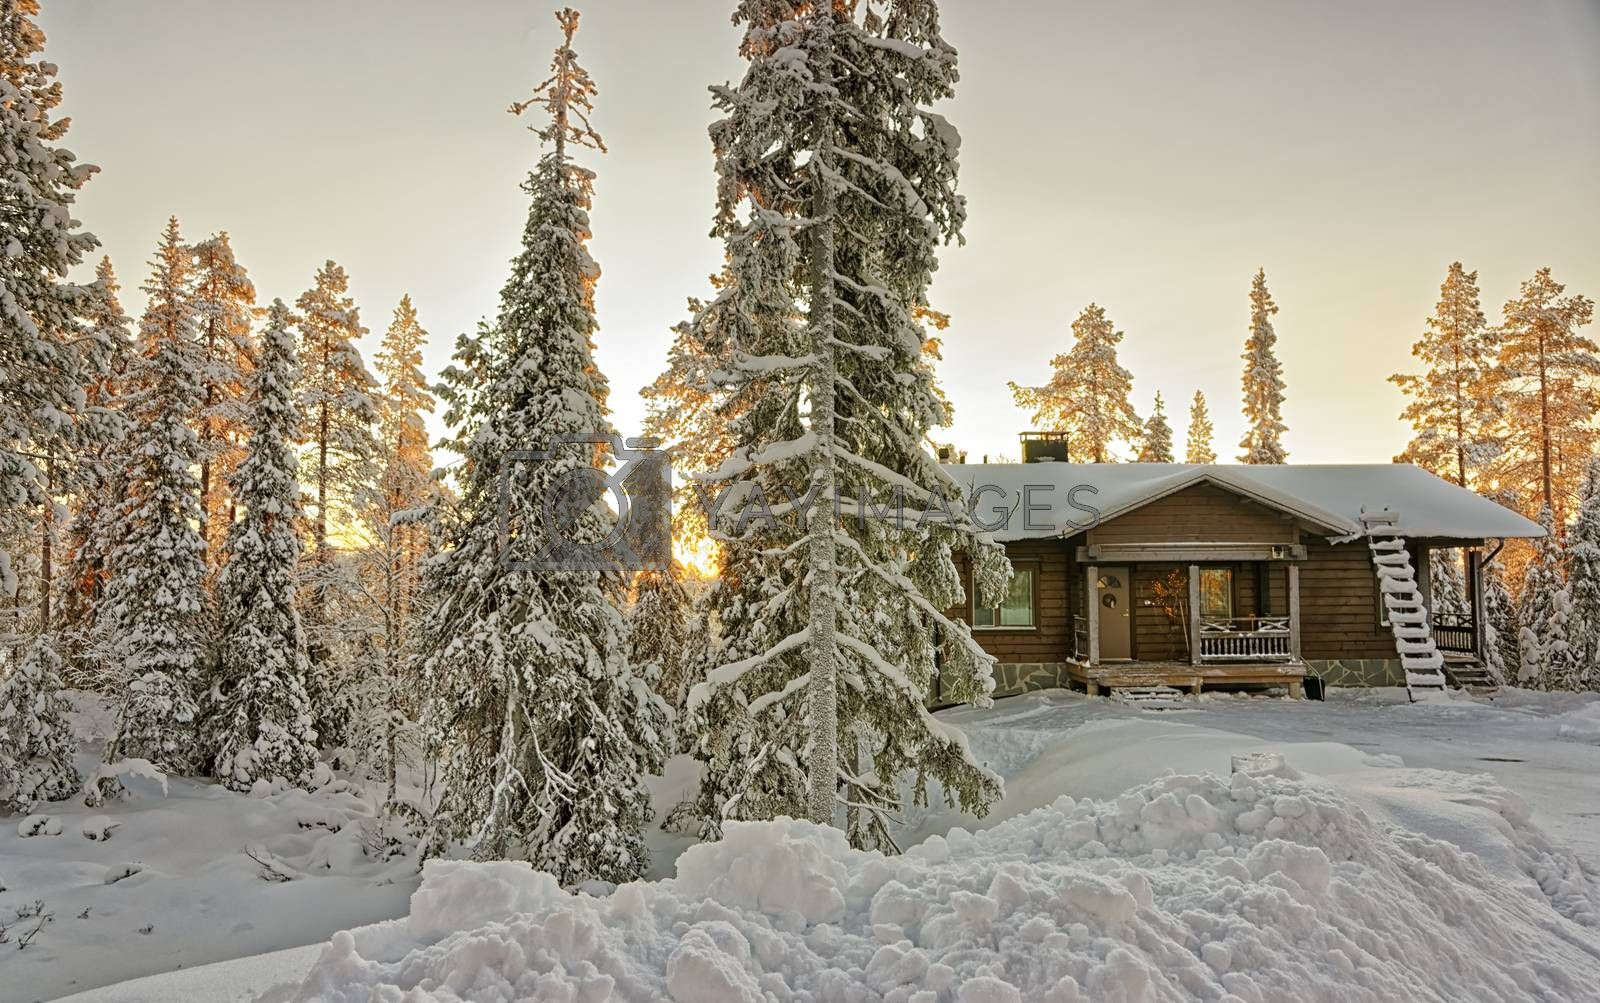 Cottage in snowy winter forest at sunset